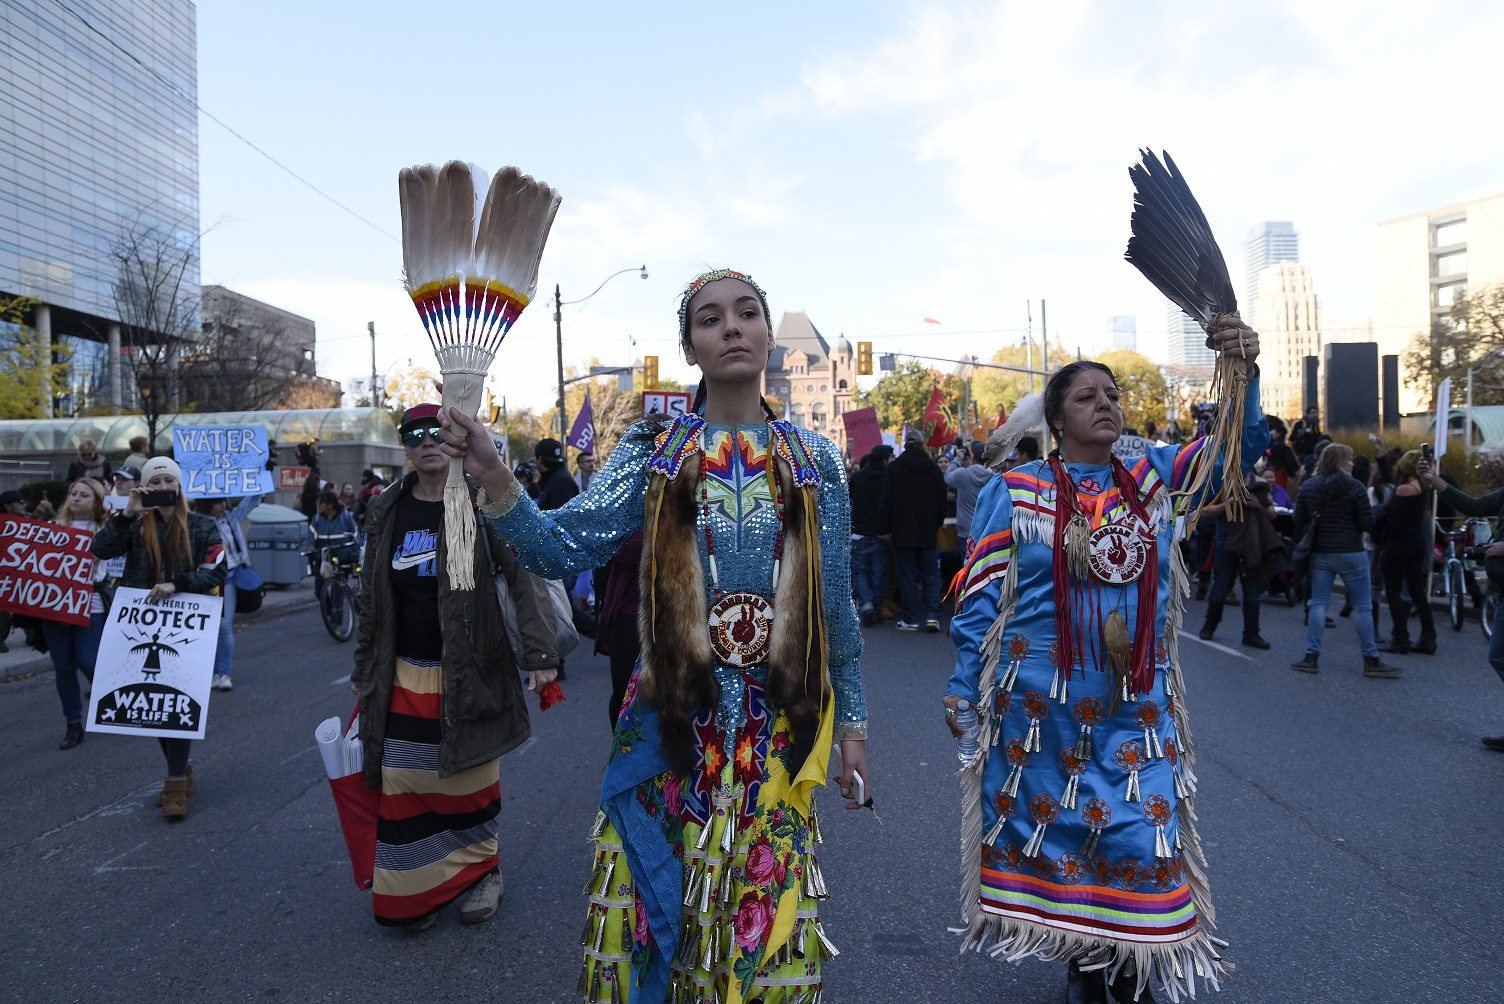 Women in traditional Indigenous dress protest on streets of Toronto